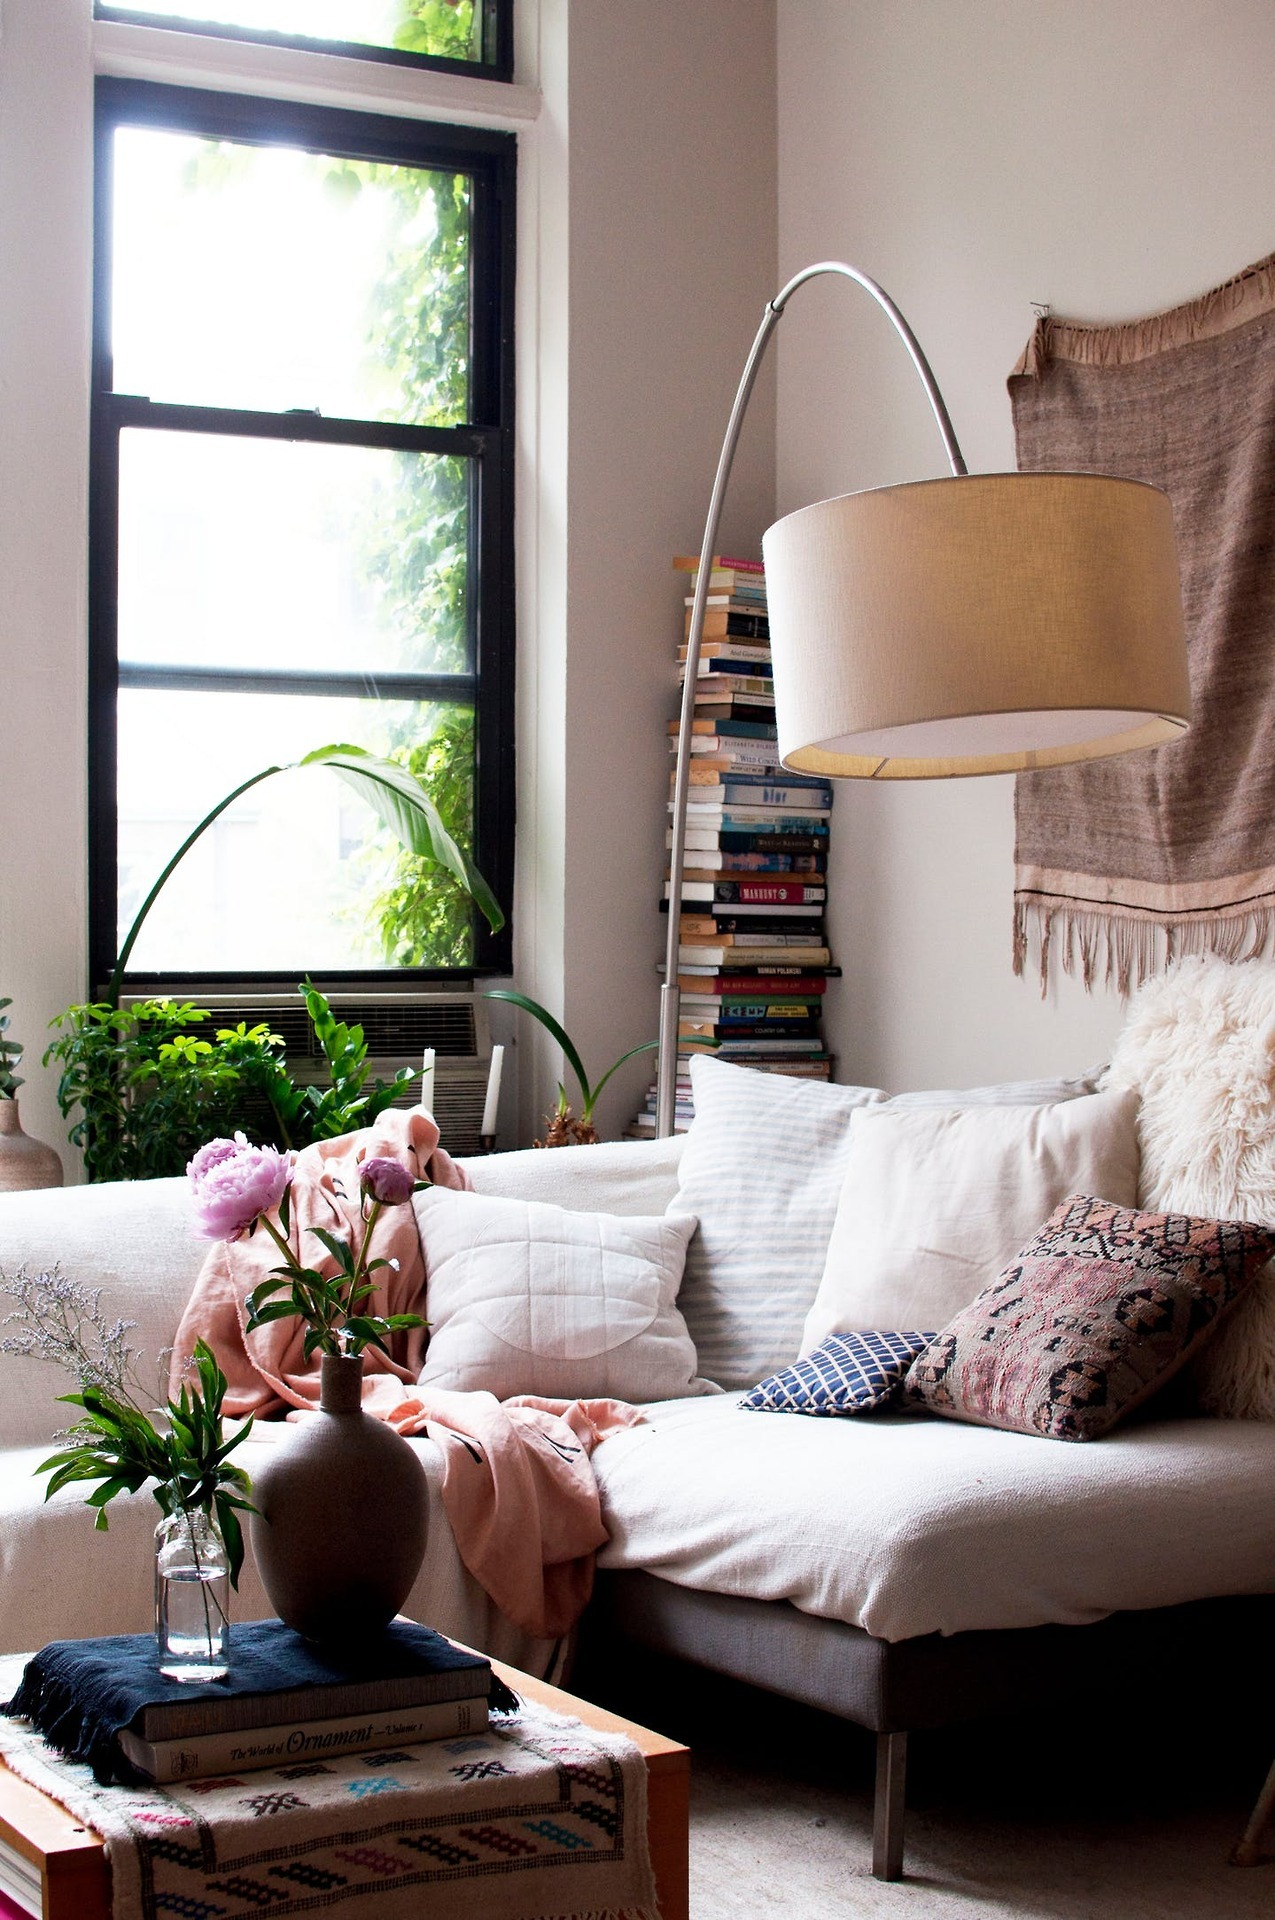 Tour This Amazing Fashion Blogger S Transitional Home Office: A Dreamy Bohemian Brooklyn Studio Apartment